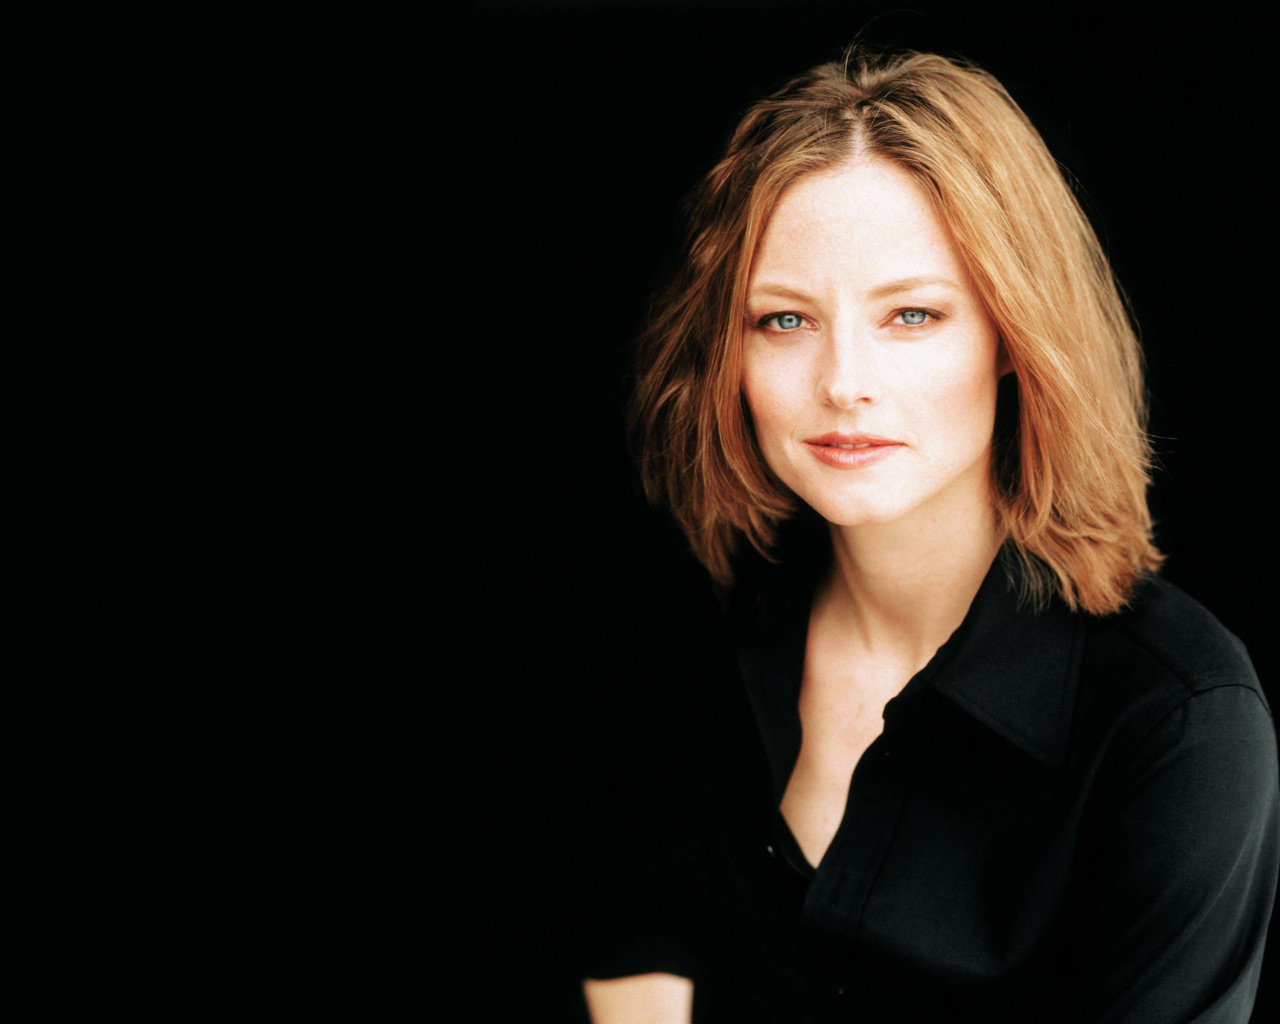 1280x1024 - Jodie Foster Wallpapers 33